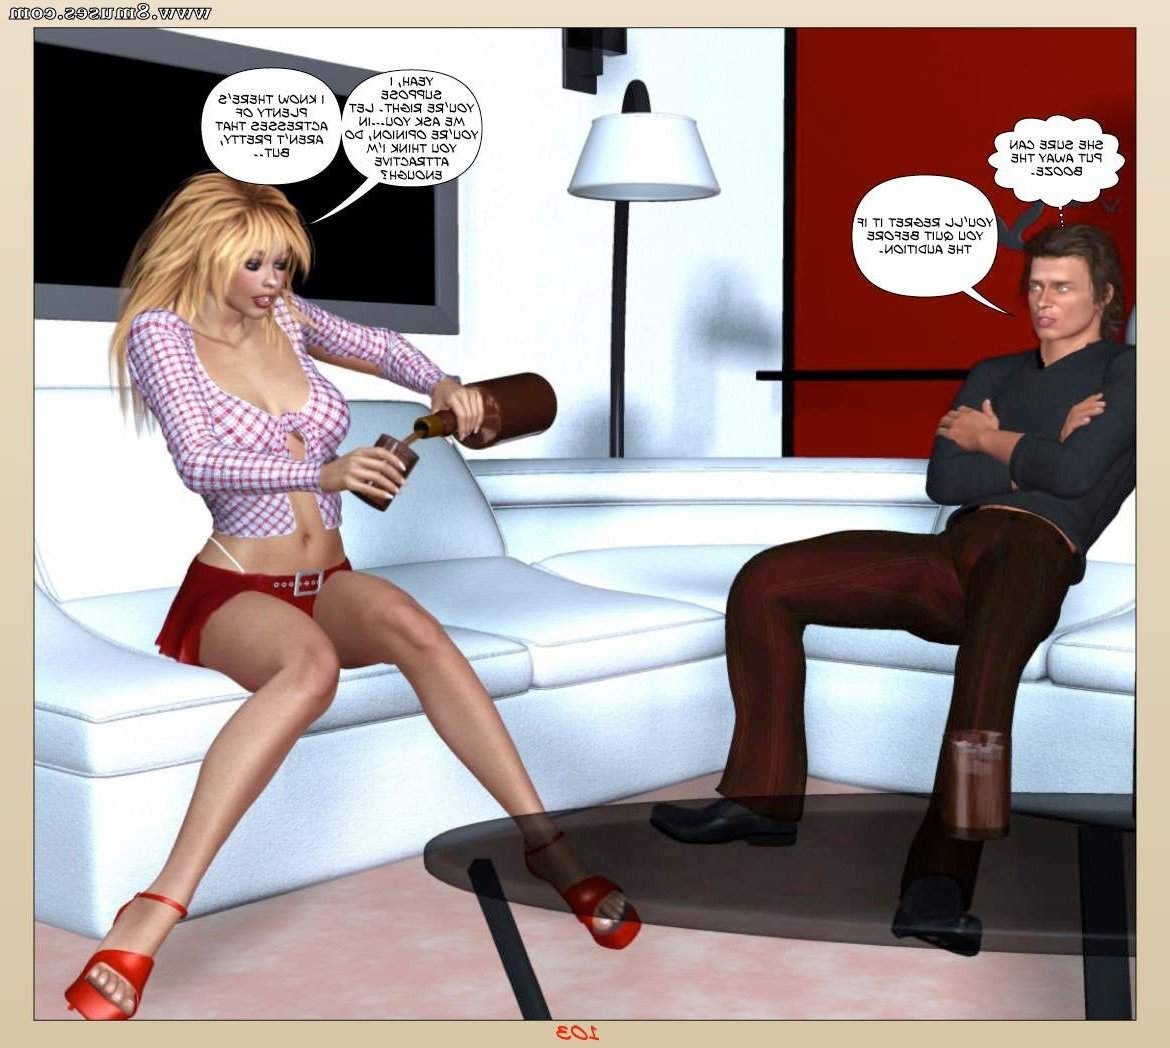 Digital-Empress-Captain-Trips-Comics/Odd-Jobs-Candra-Misky Odd_Jobs_-_Candra_Misky__8muses_-_Sex_and_Porn_Comics_103.jpg